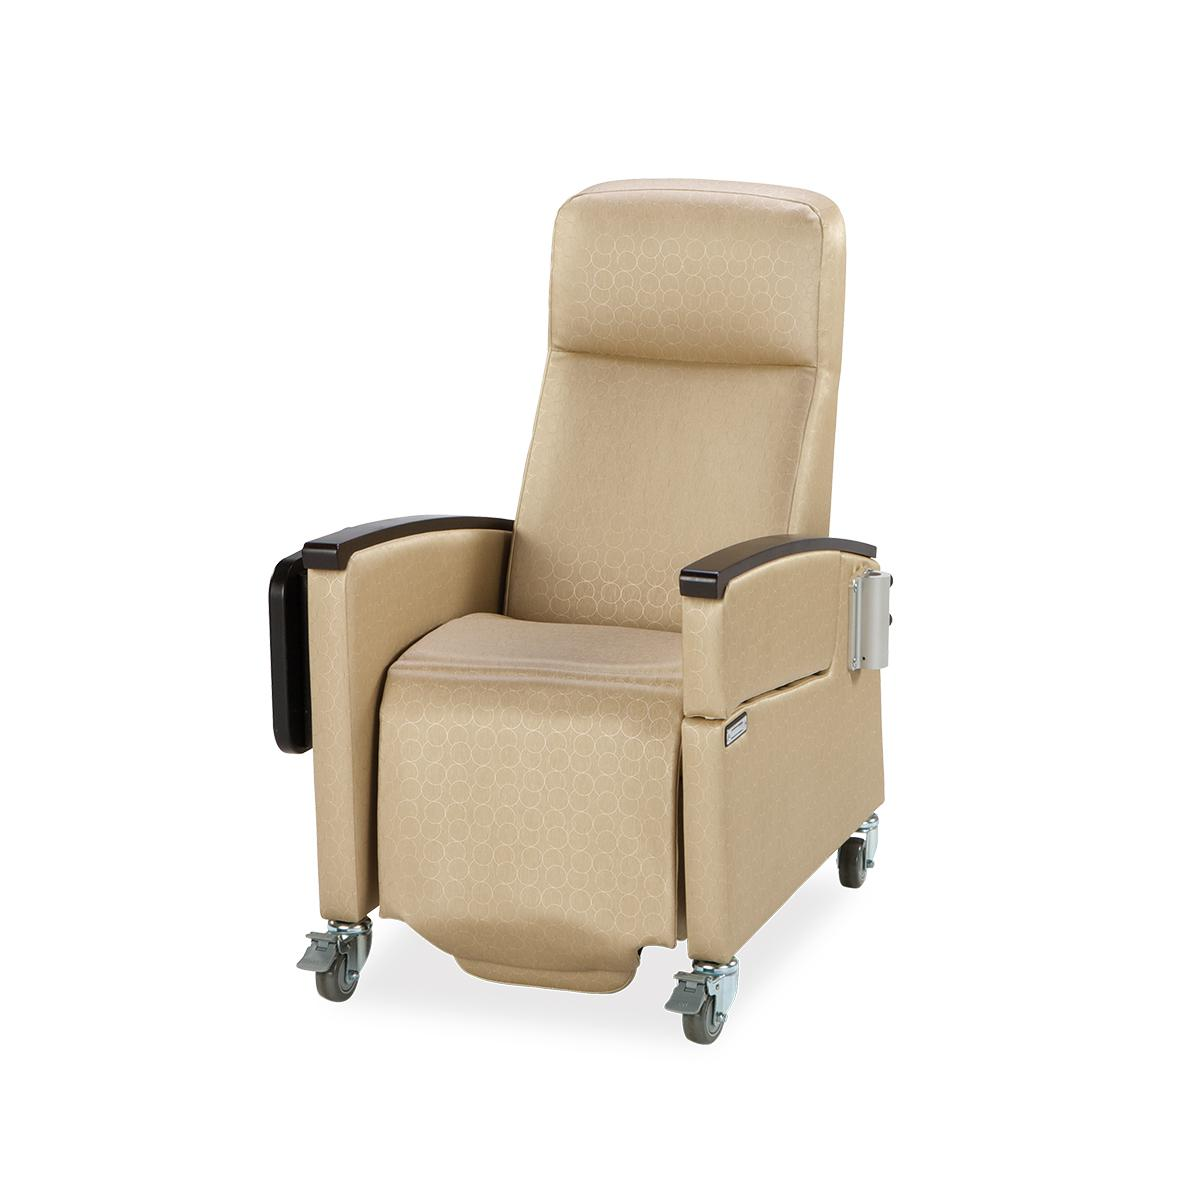 A tan Art of Care Junior Recliner, featuring a fold tabletop, caster wheels with foot chock and armrests